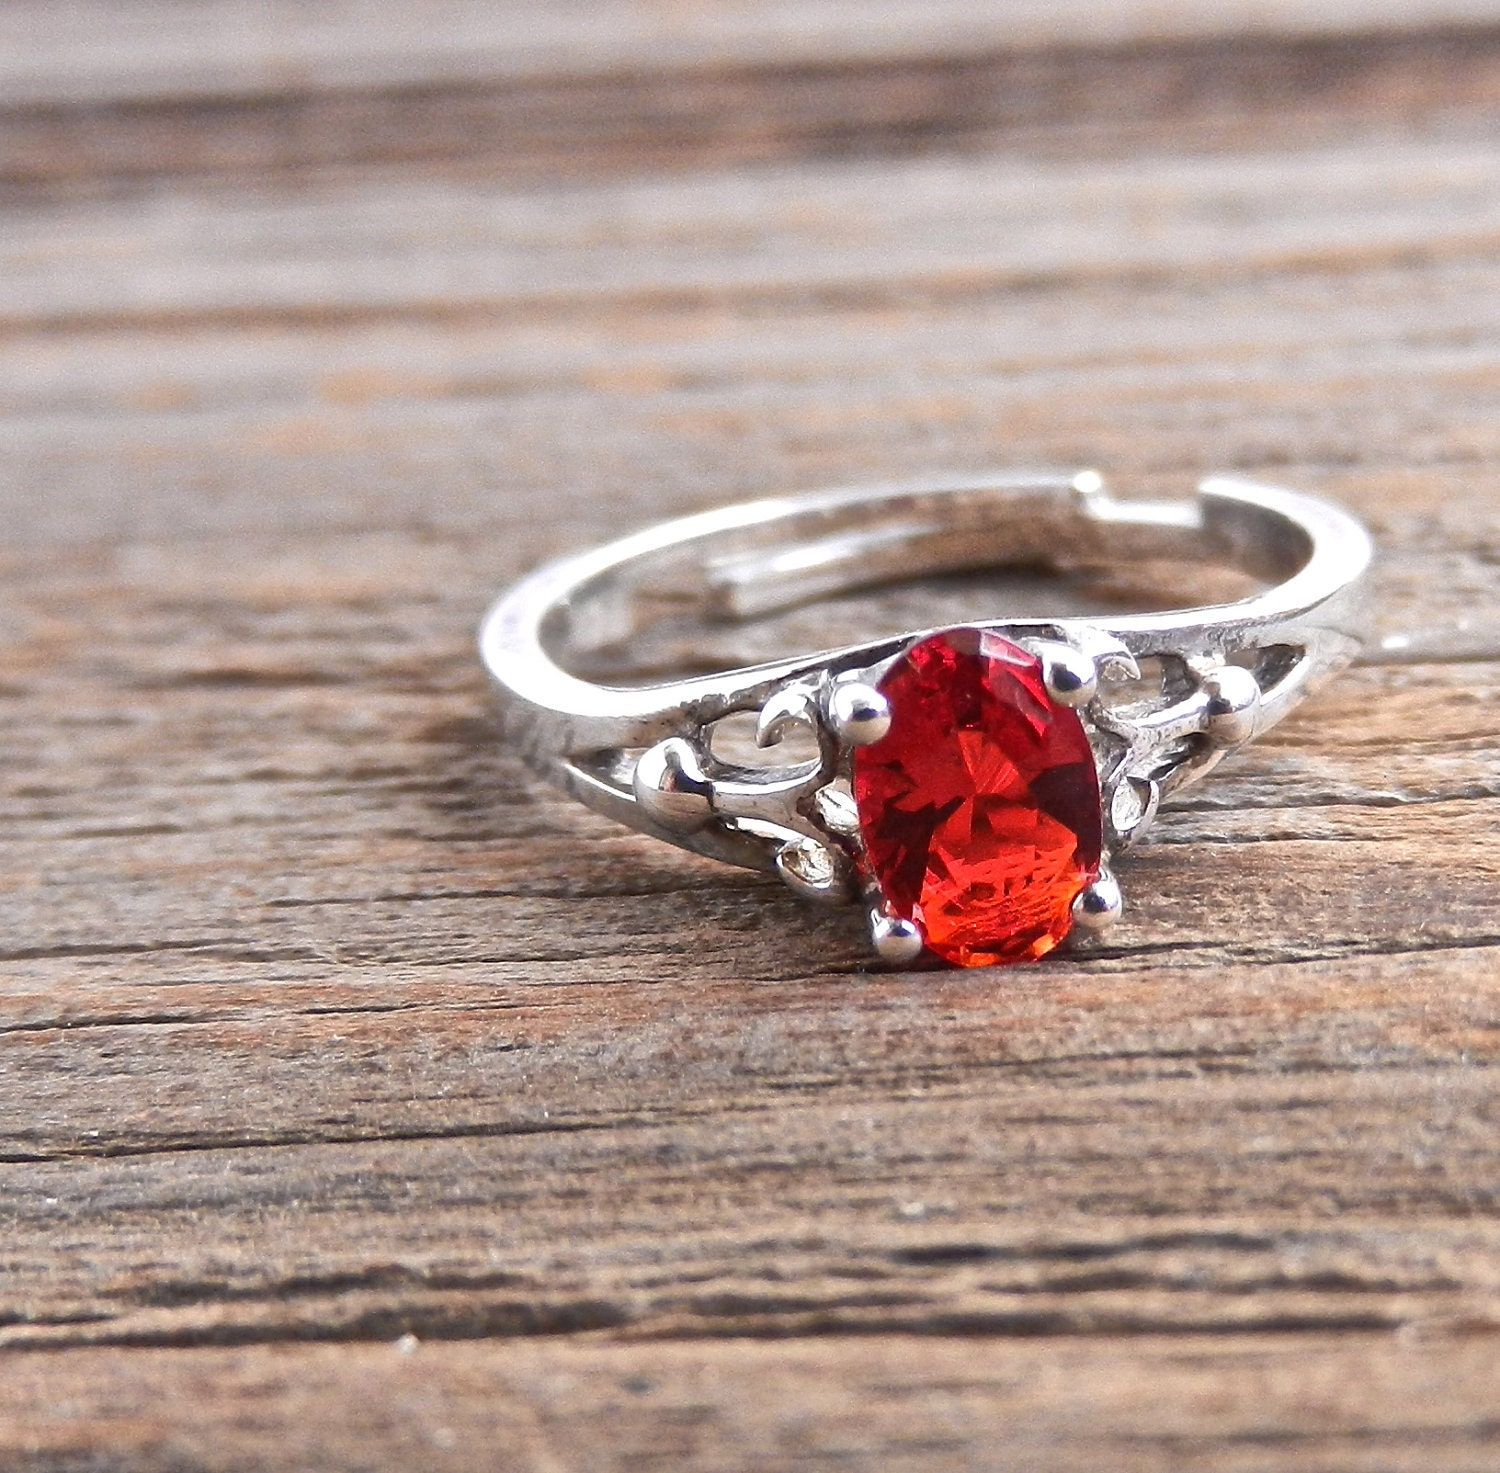 Silver Red Granite : Vintage sterling silver red stone ring dainty by